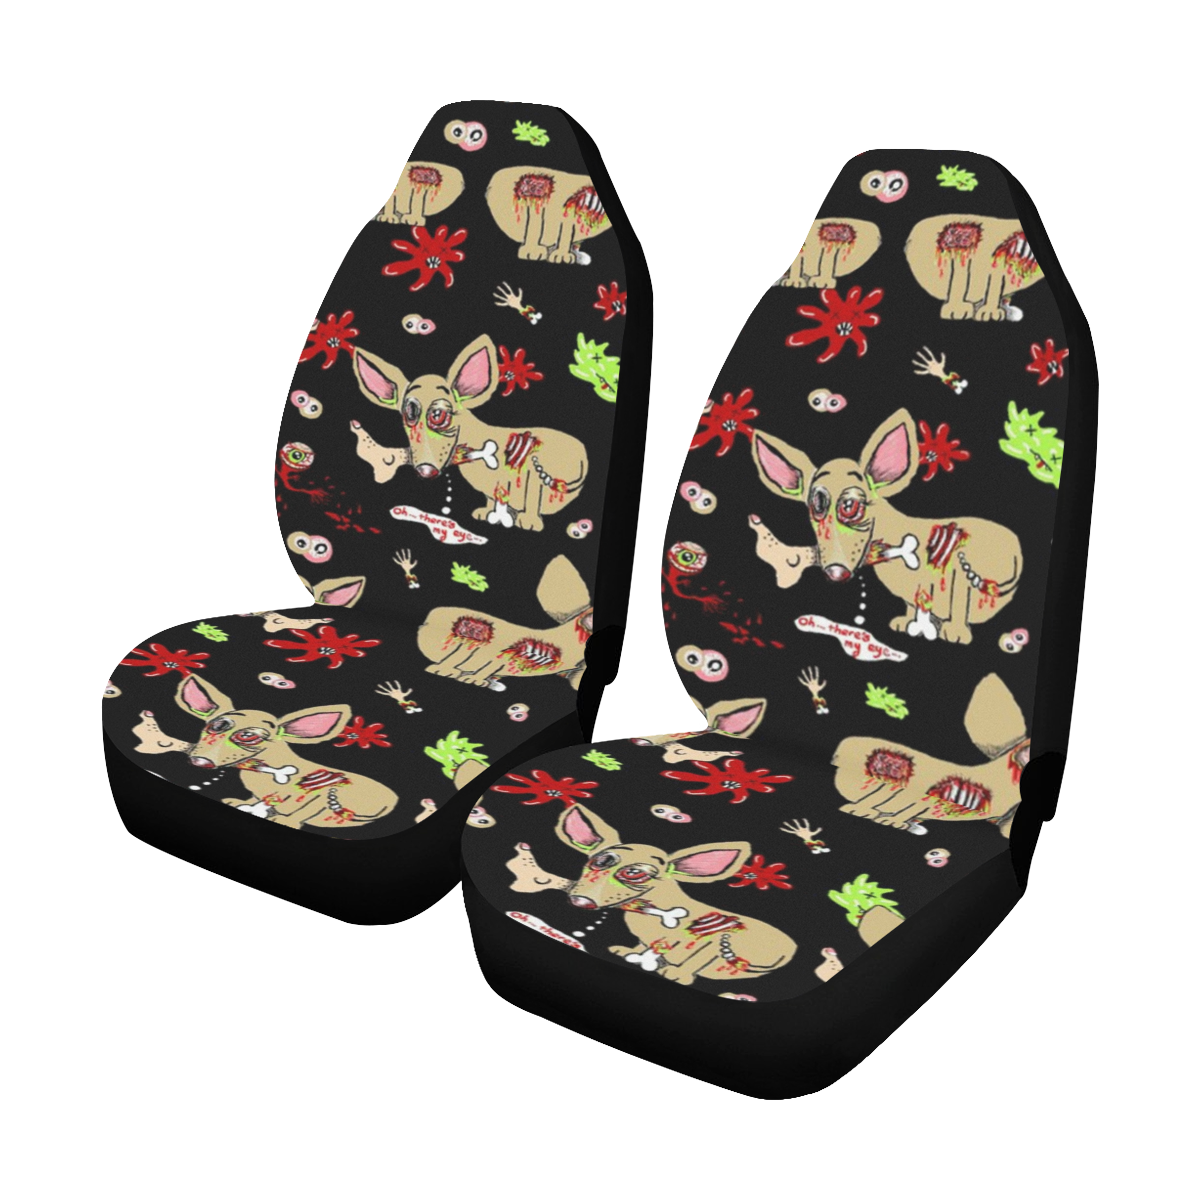 Zombie Chihuahua Car Seat Covers (Set